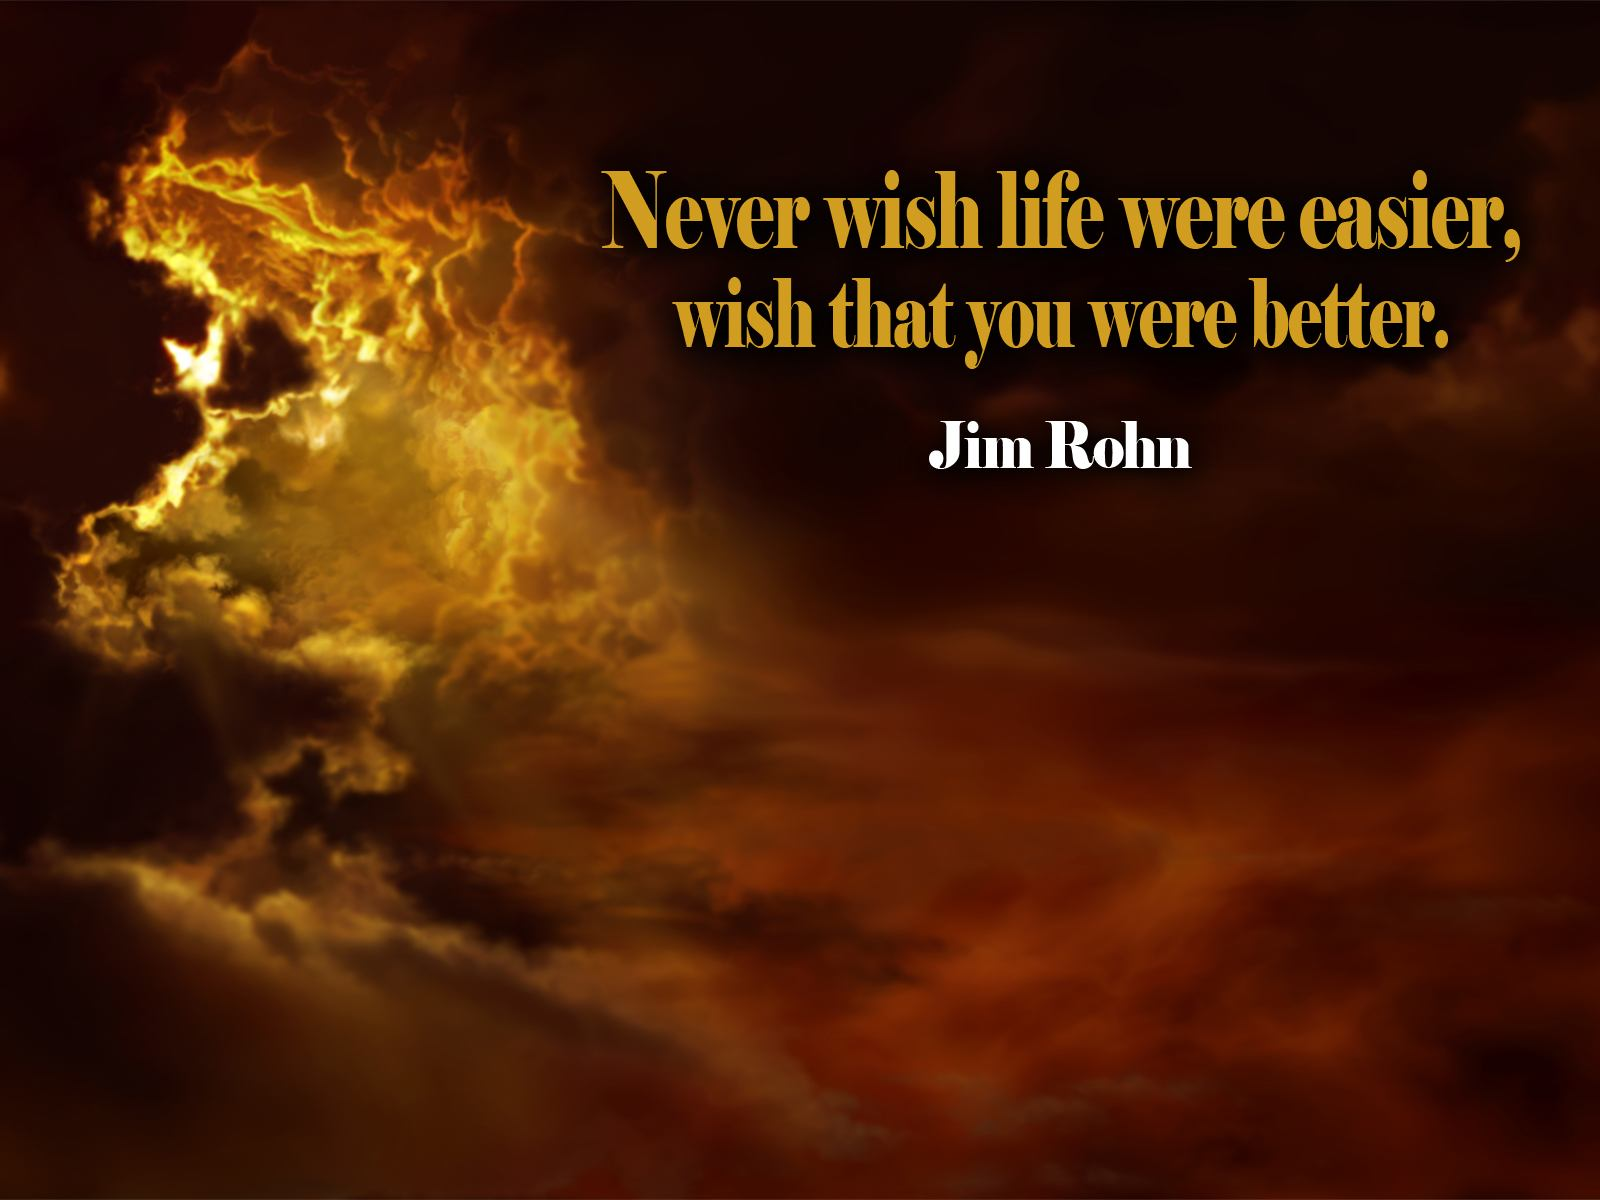 Best Quotes Ever: Exciting Inspirational Quotes